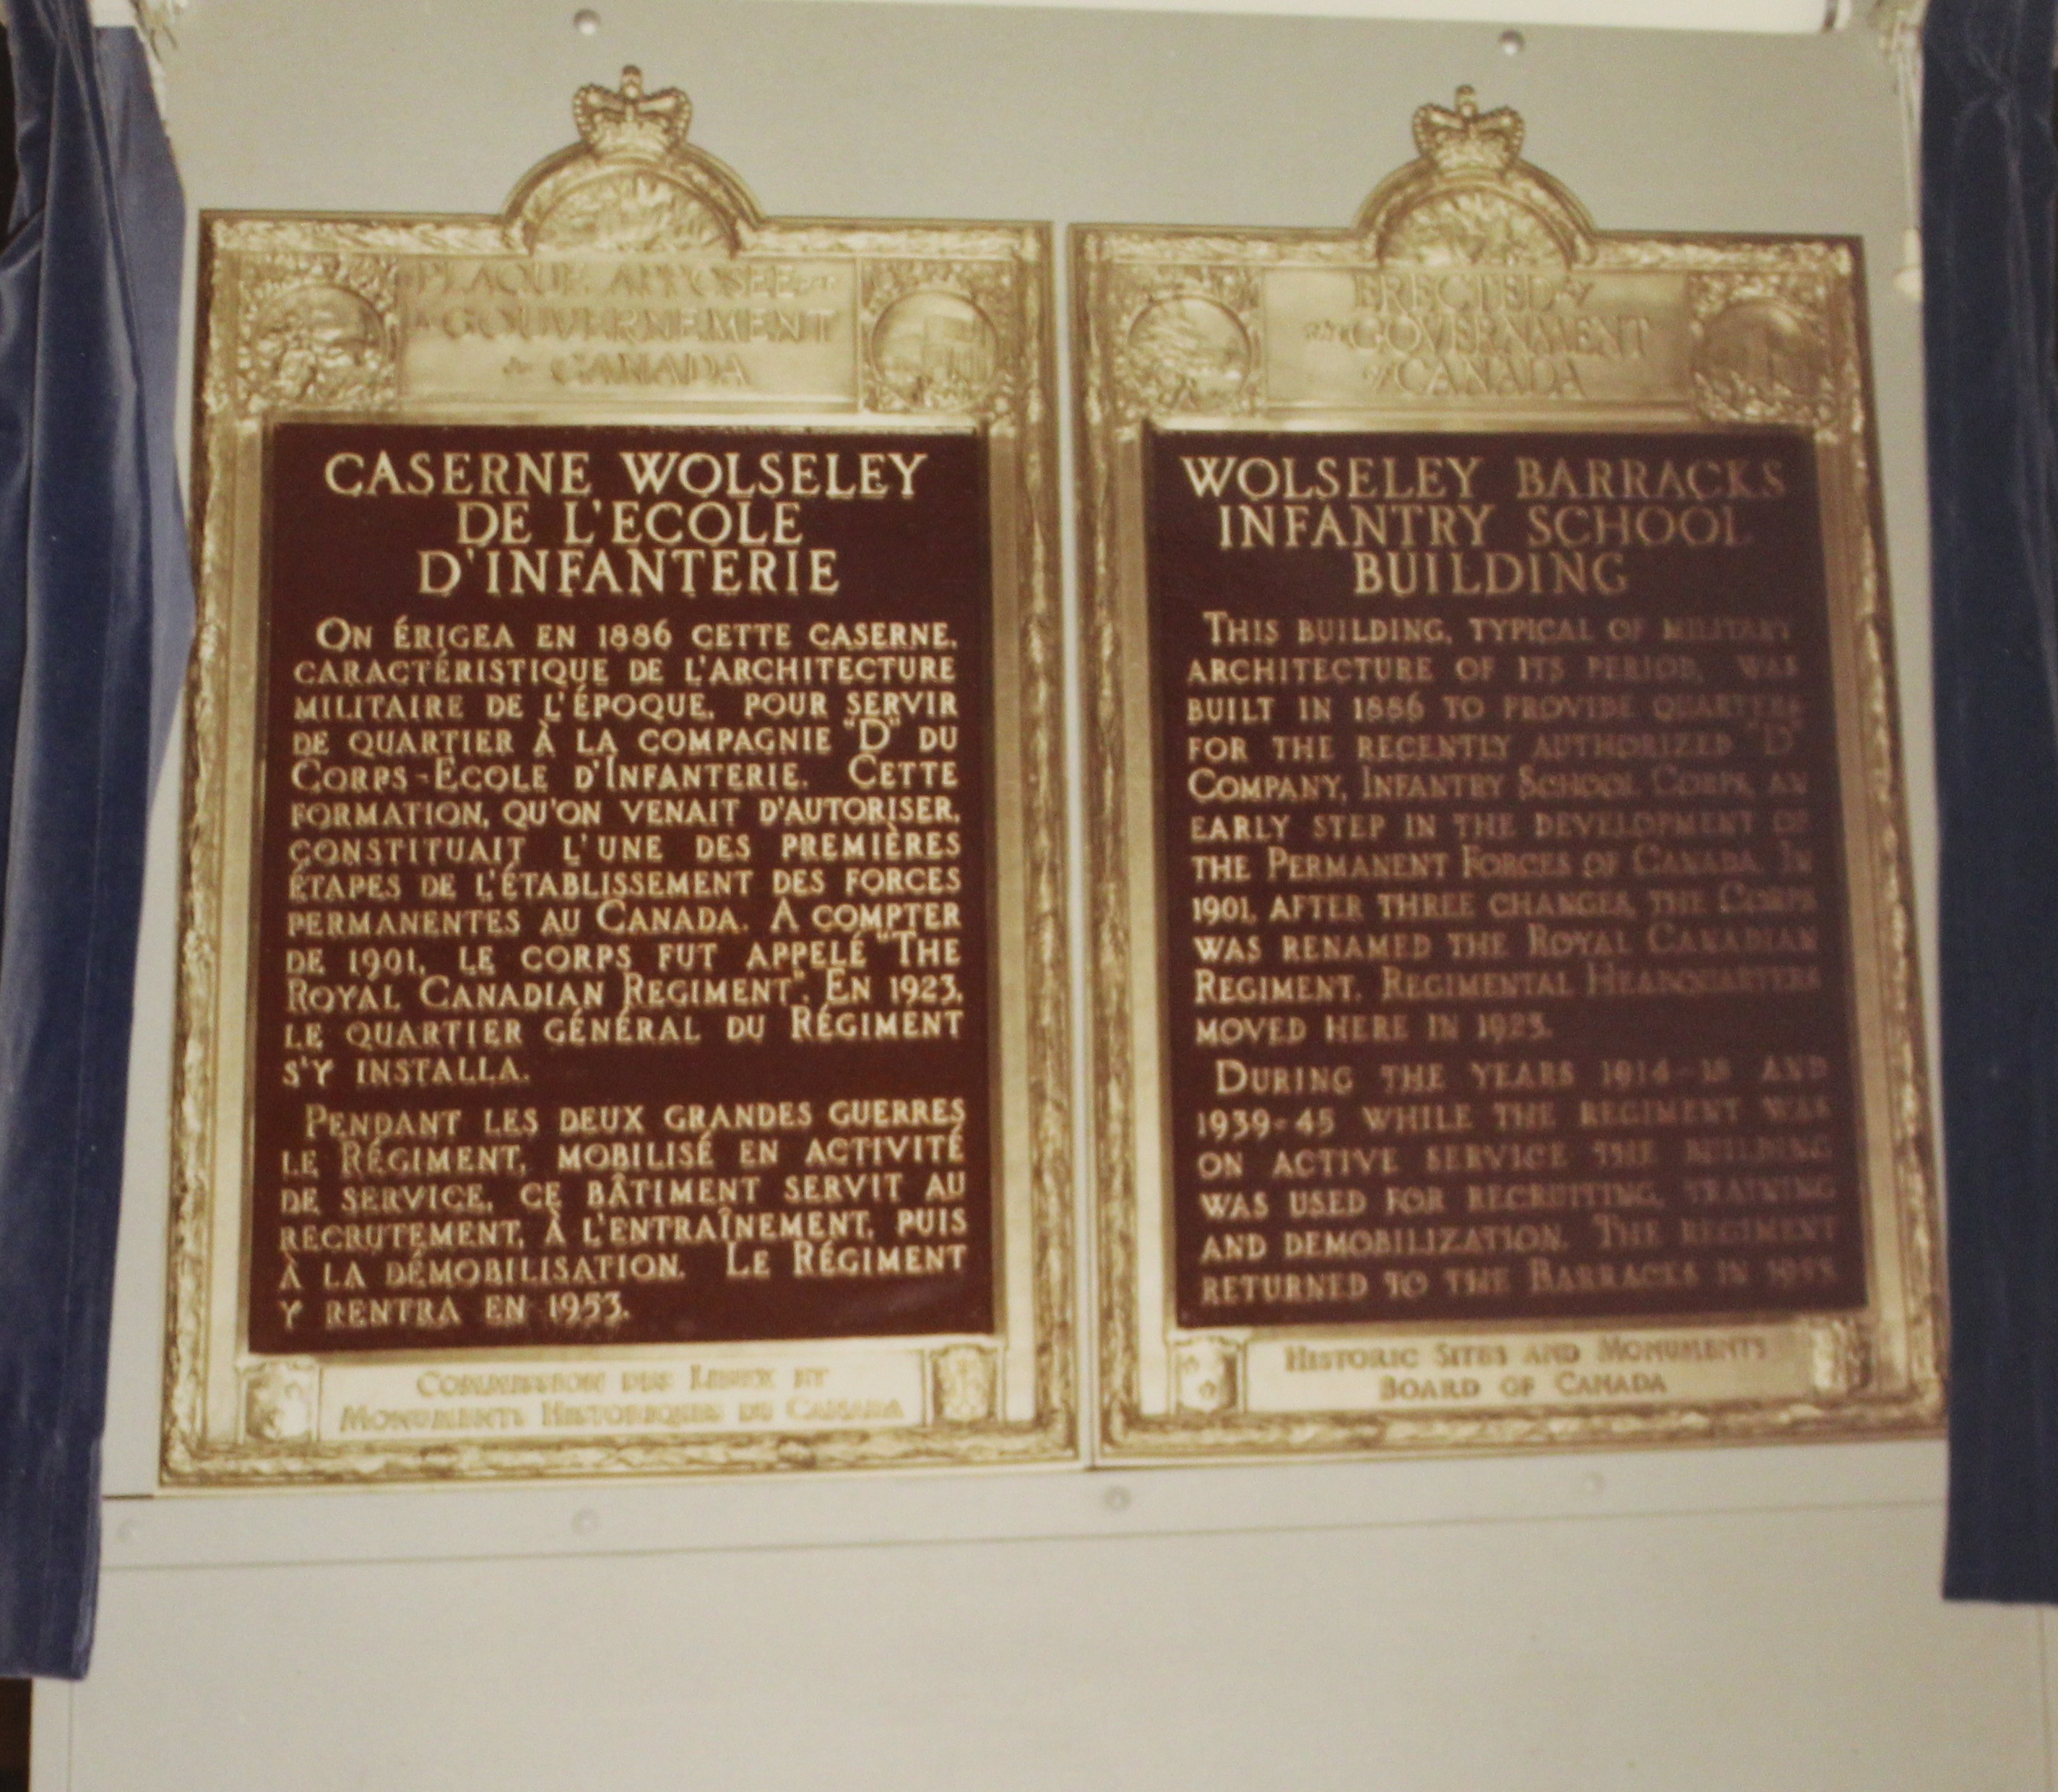 Plaques Given to Commemorate Wolseley Hall 26 June 1970